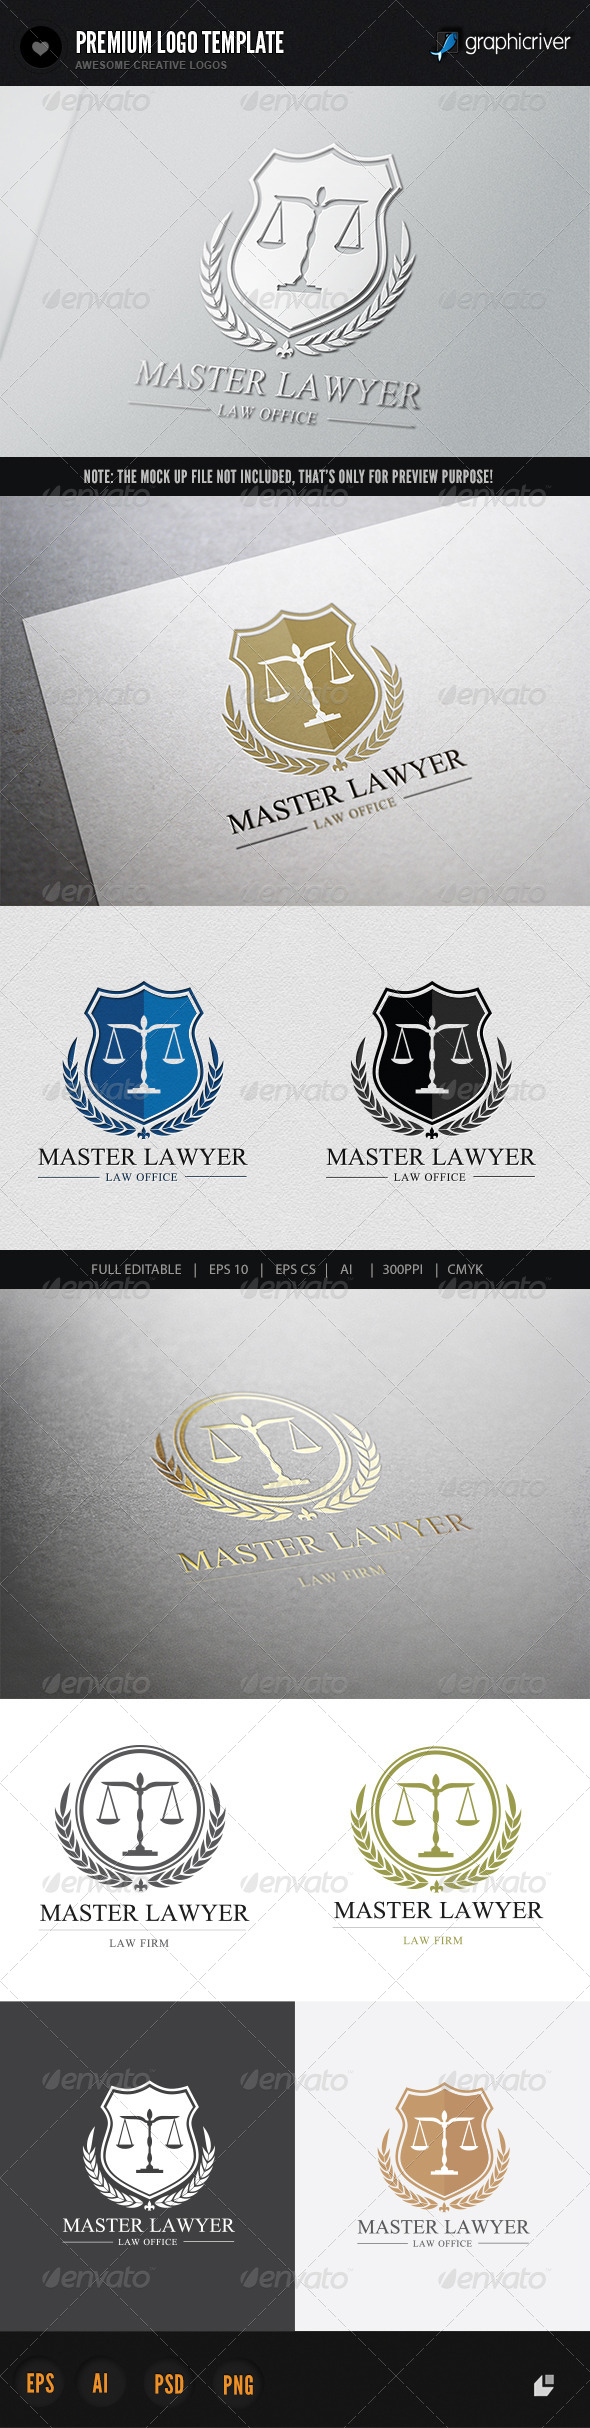 Lawyer Logo Graphics, Designs & Templates from GraphicRiver